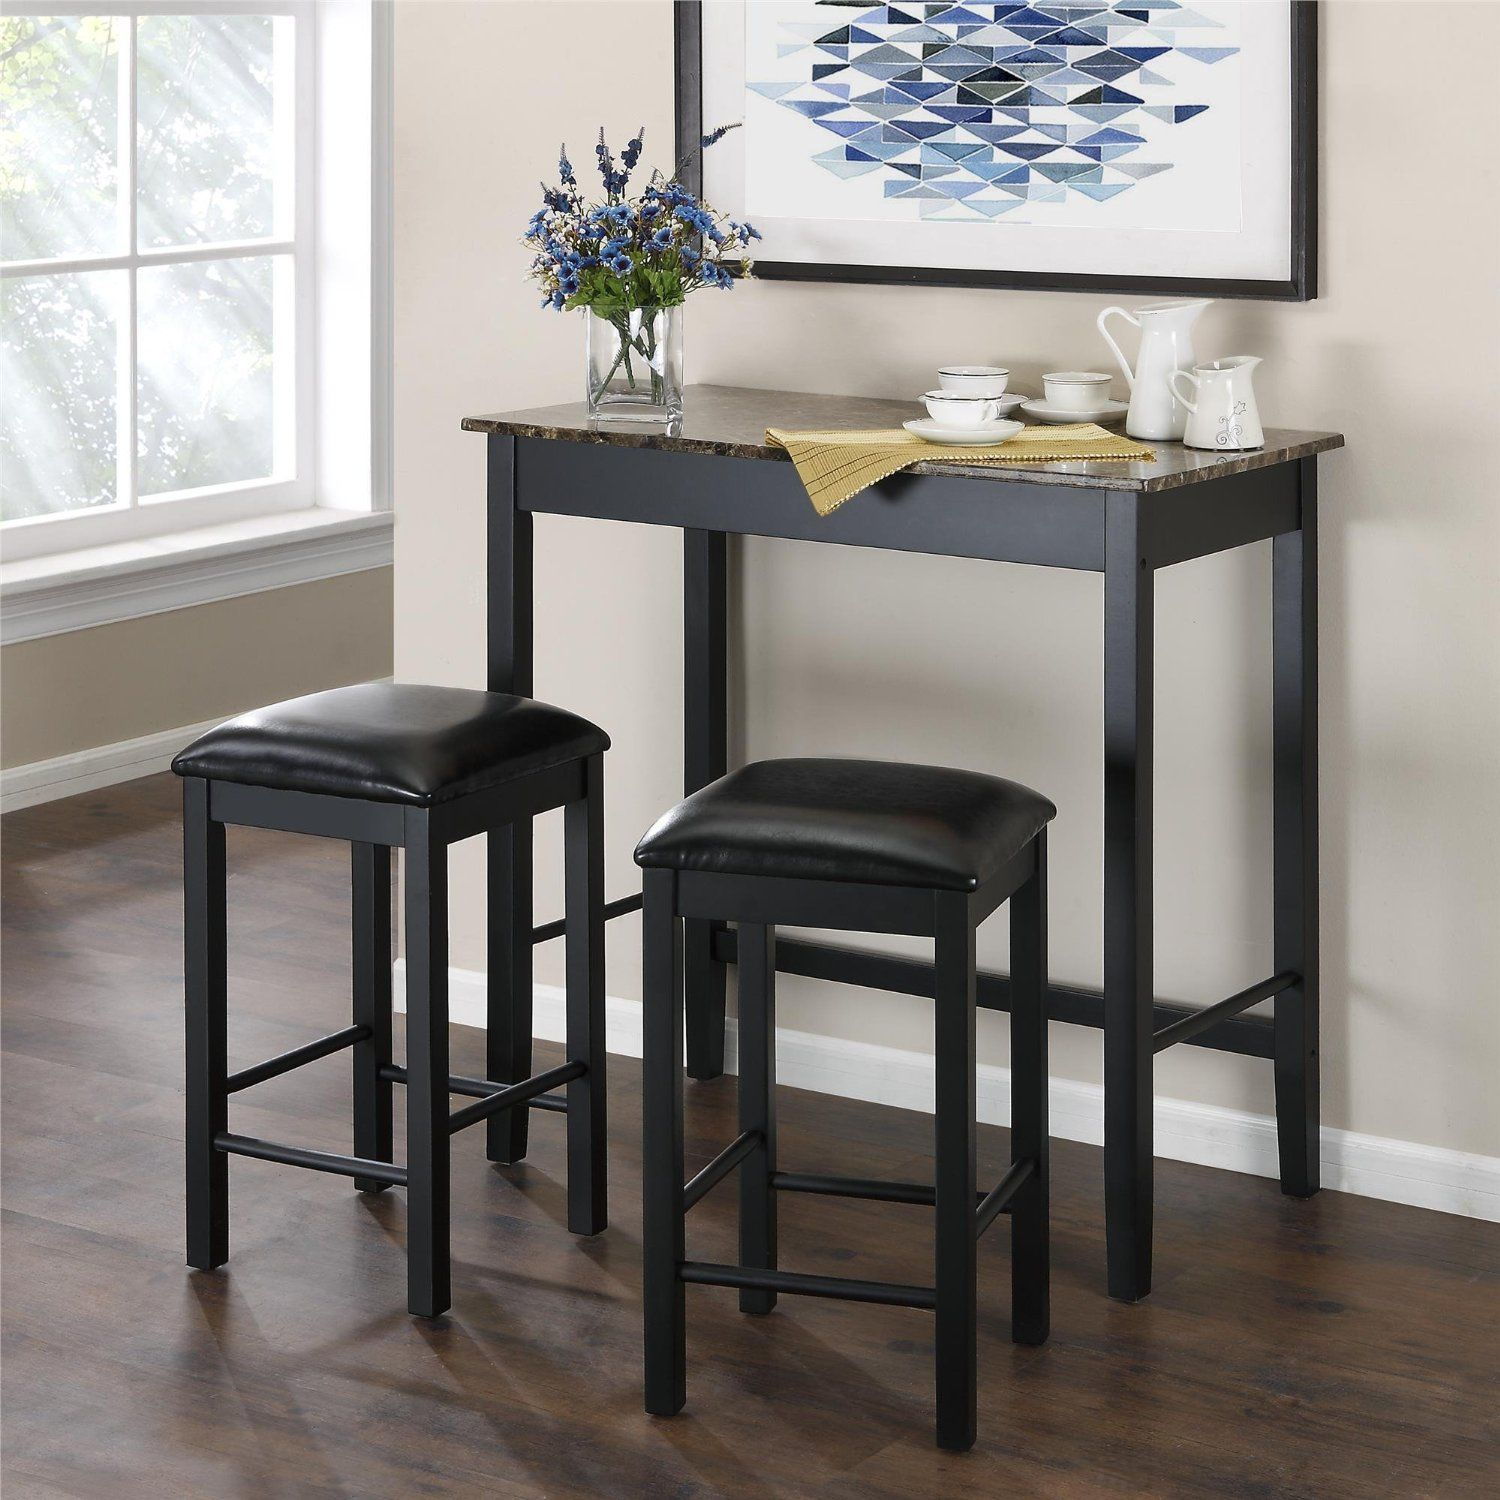 Perfect table for a small space. Dorel Living 3-Piece Devyn Faux Marble Pub · Pub Dining Set3 ... & Perfect table for a small space. Dorel Living 3-Piece Devyn Faux ...